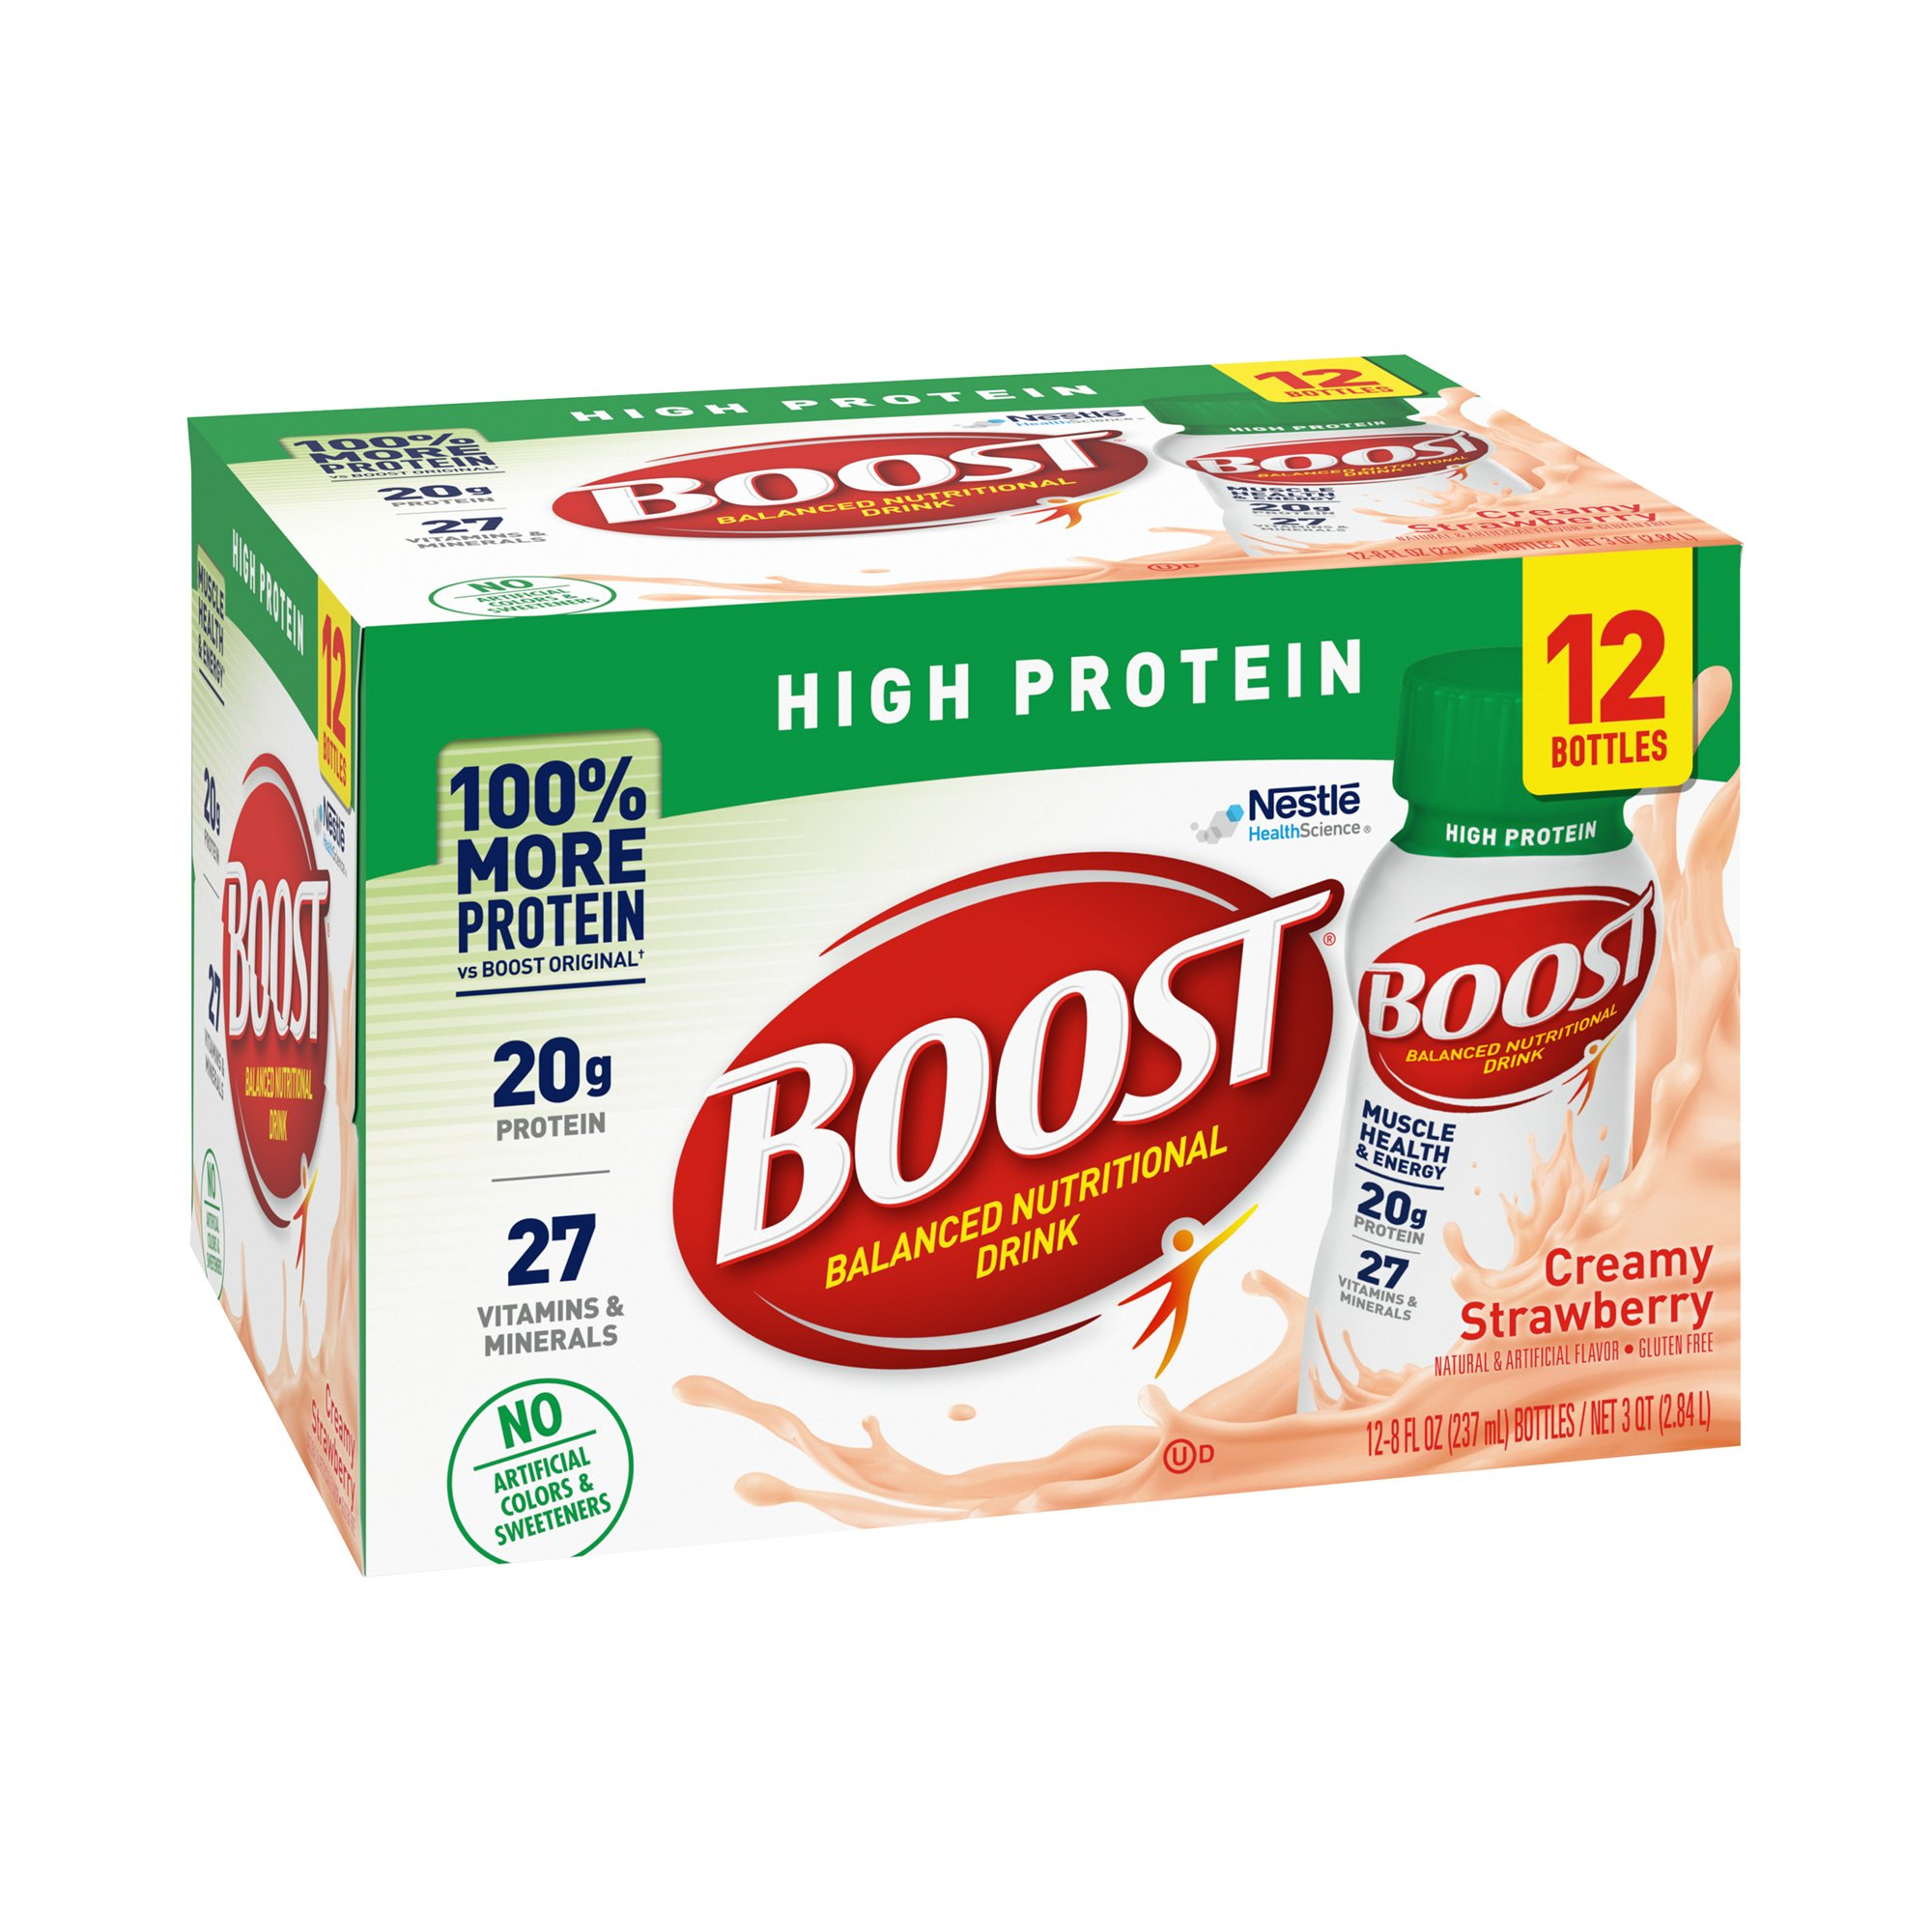 Boost High Protein Balanced Nutritional Drink, 8 oz., Creamy Strawberry, 12384278, Case of 24 (2 Packs)